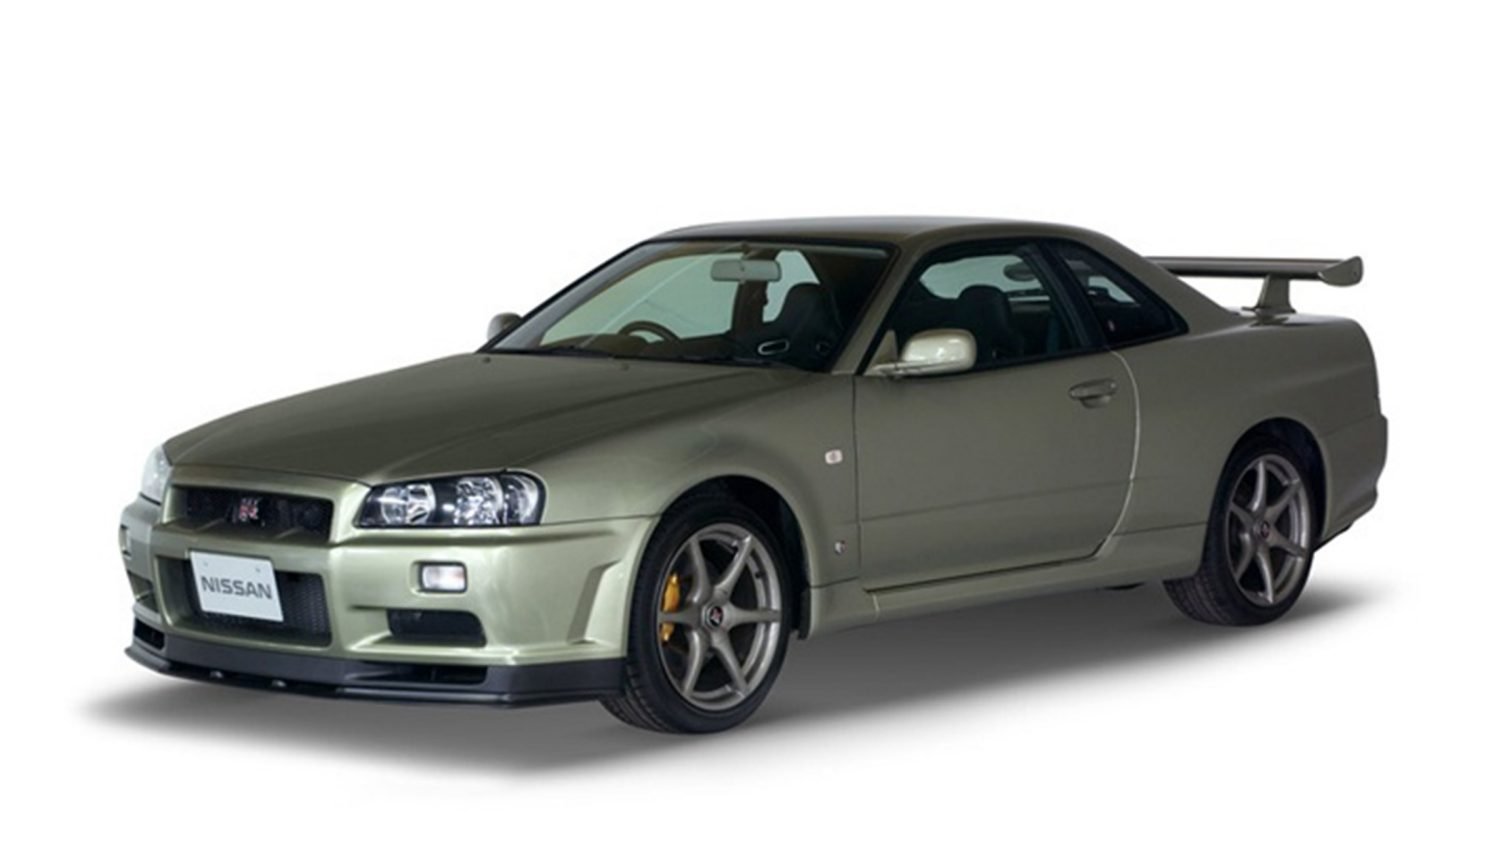 Nissan Gtr R34 For Sale >> Nissan GT-R